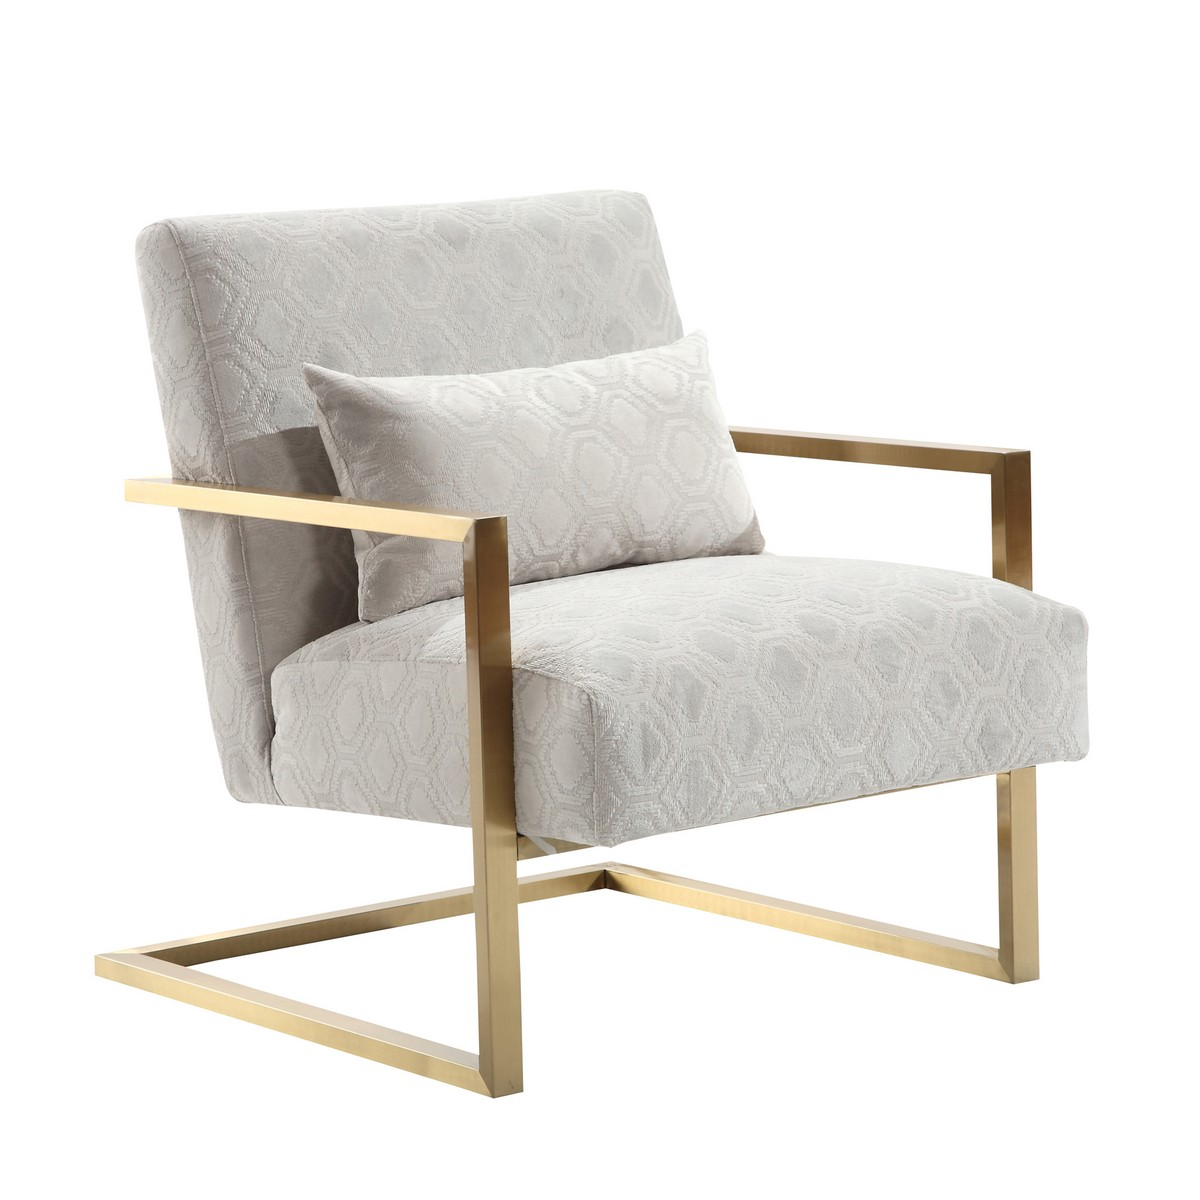 Armen living skyline modern accent chair in cream chenille for Modern furniture for less